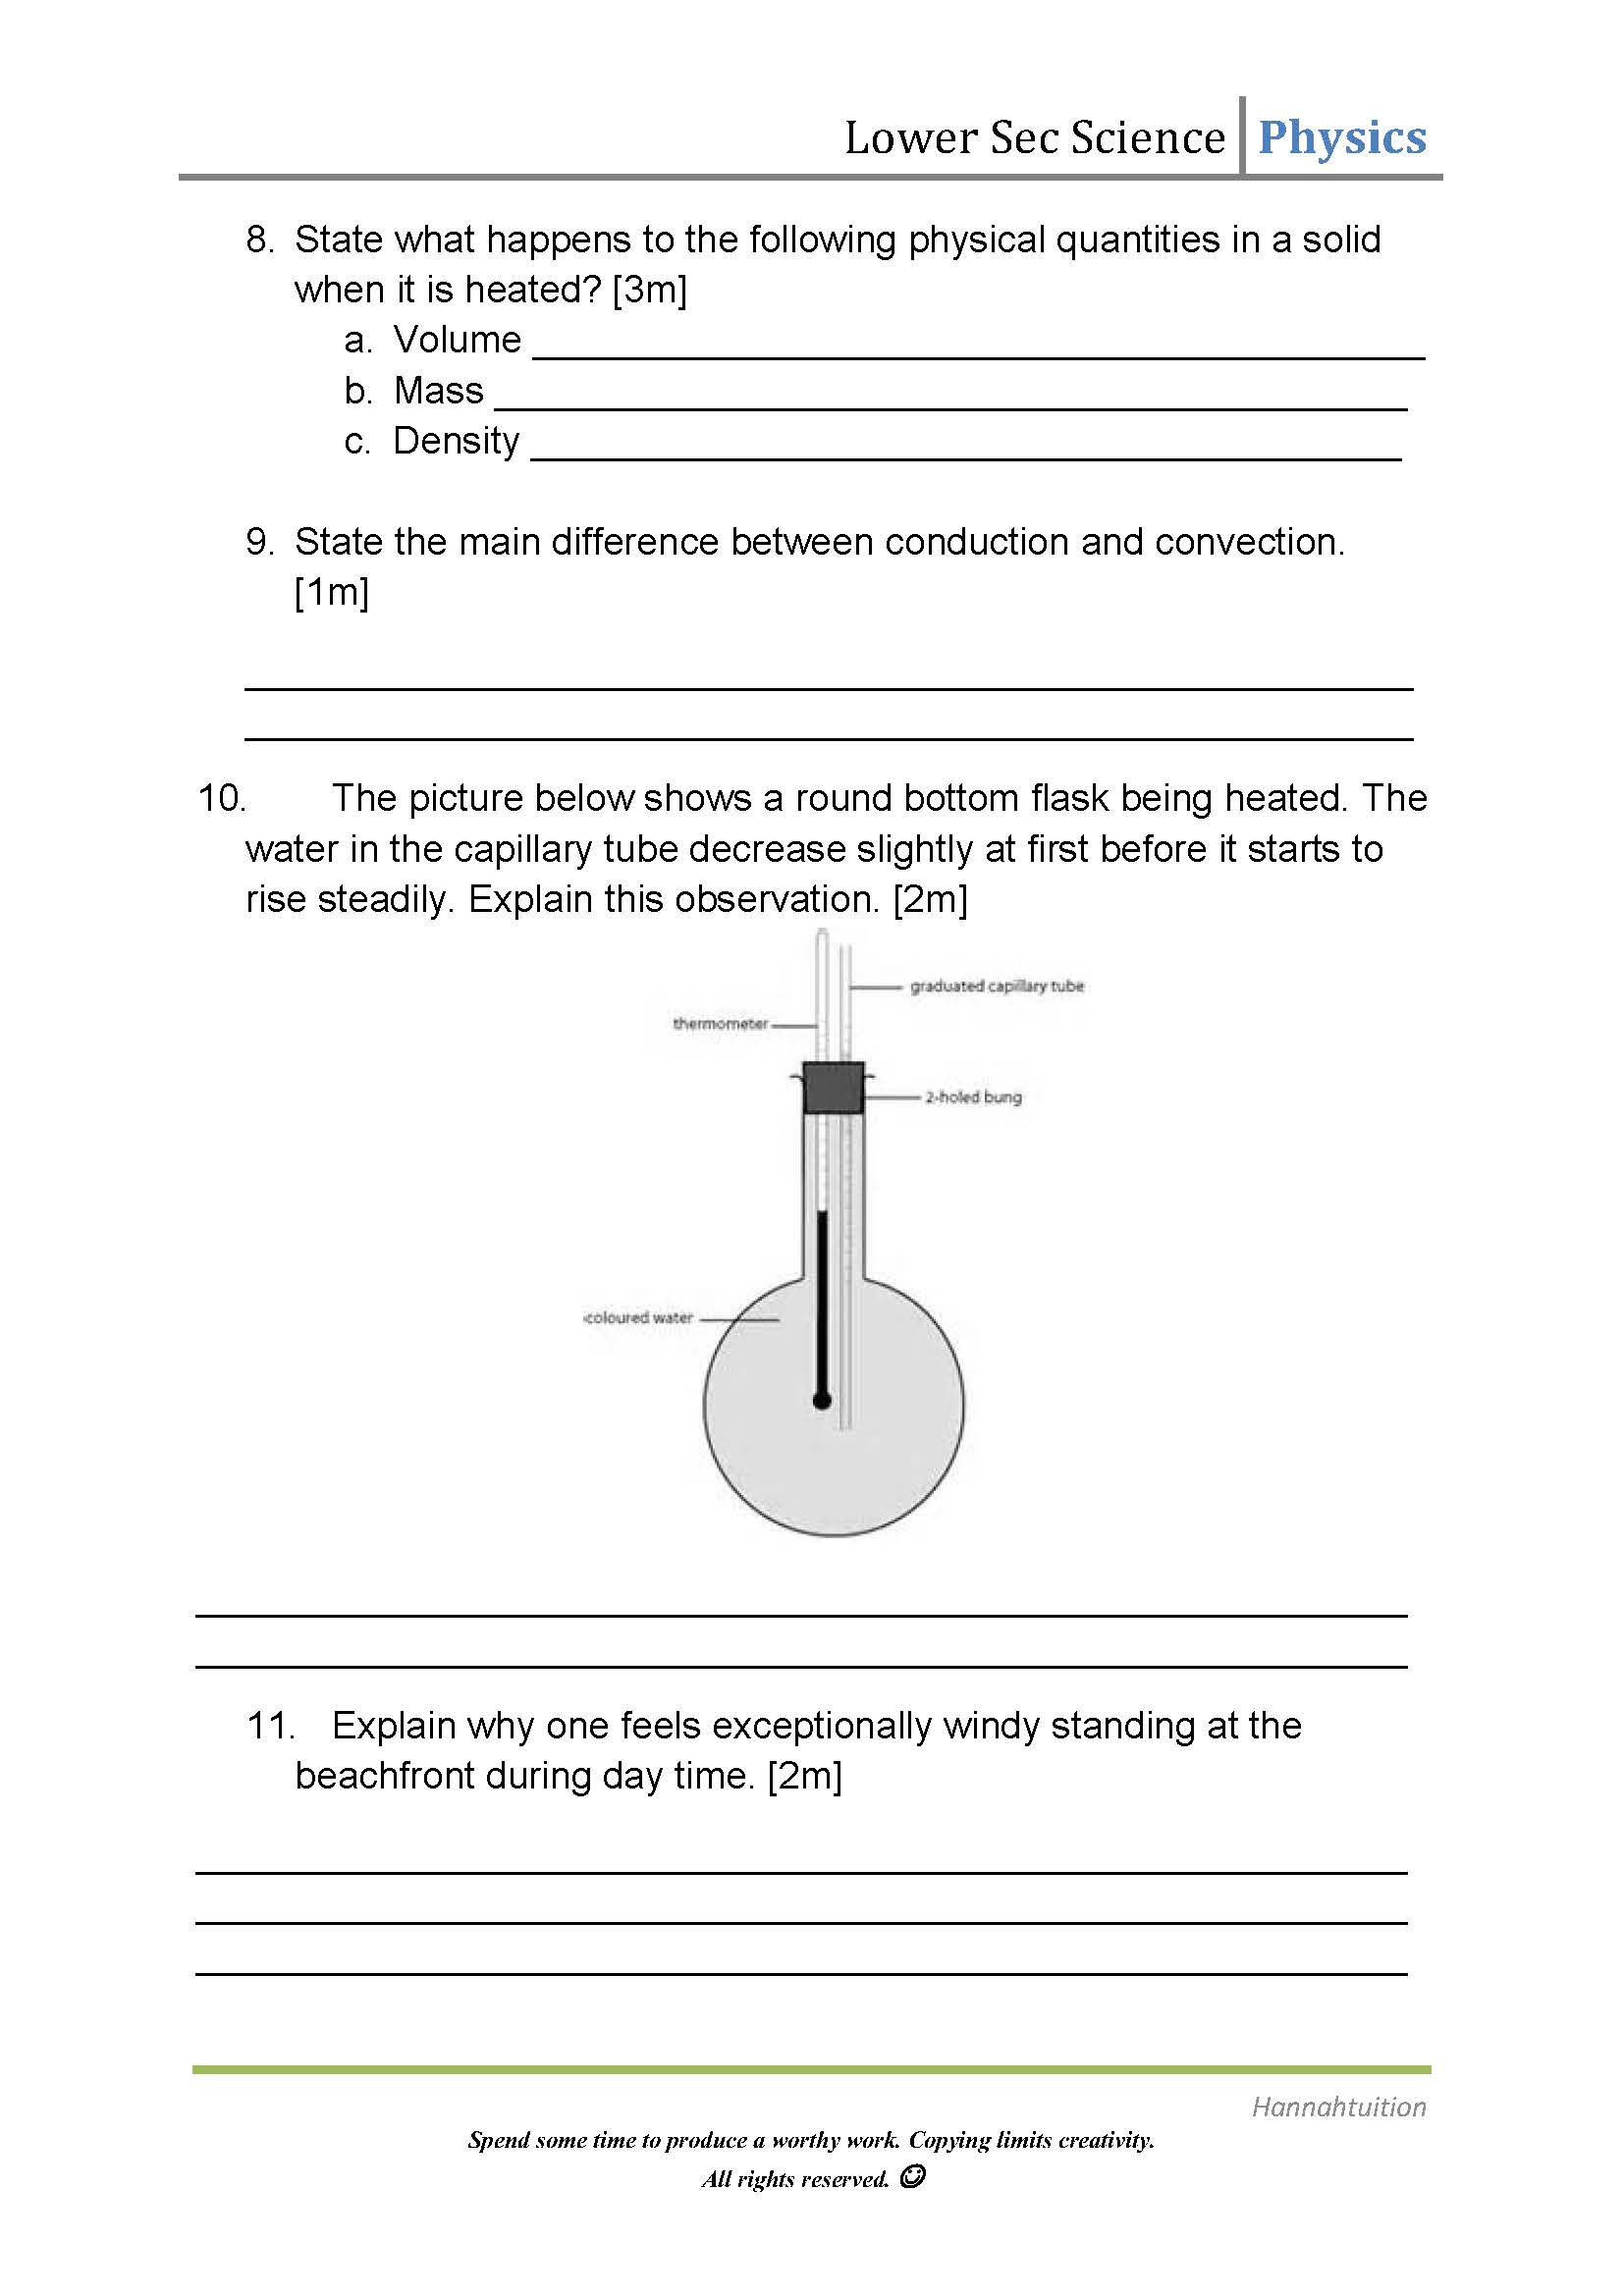 Physics Heat Transfer Lower Sec Worksheet